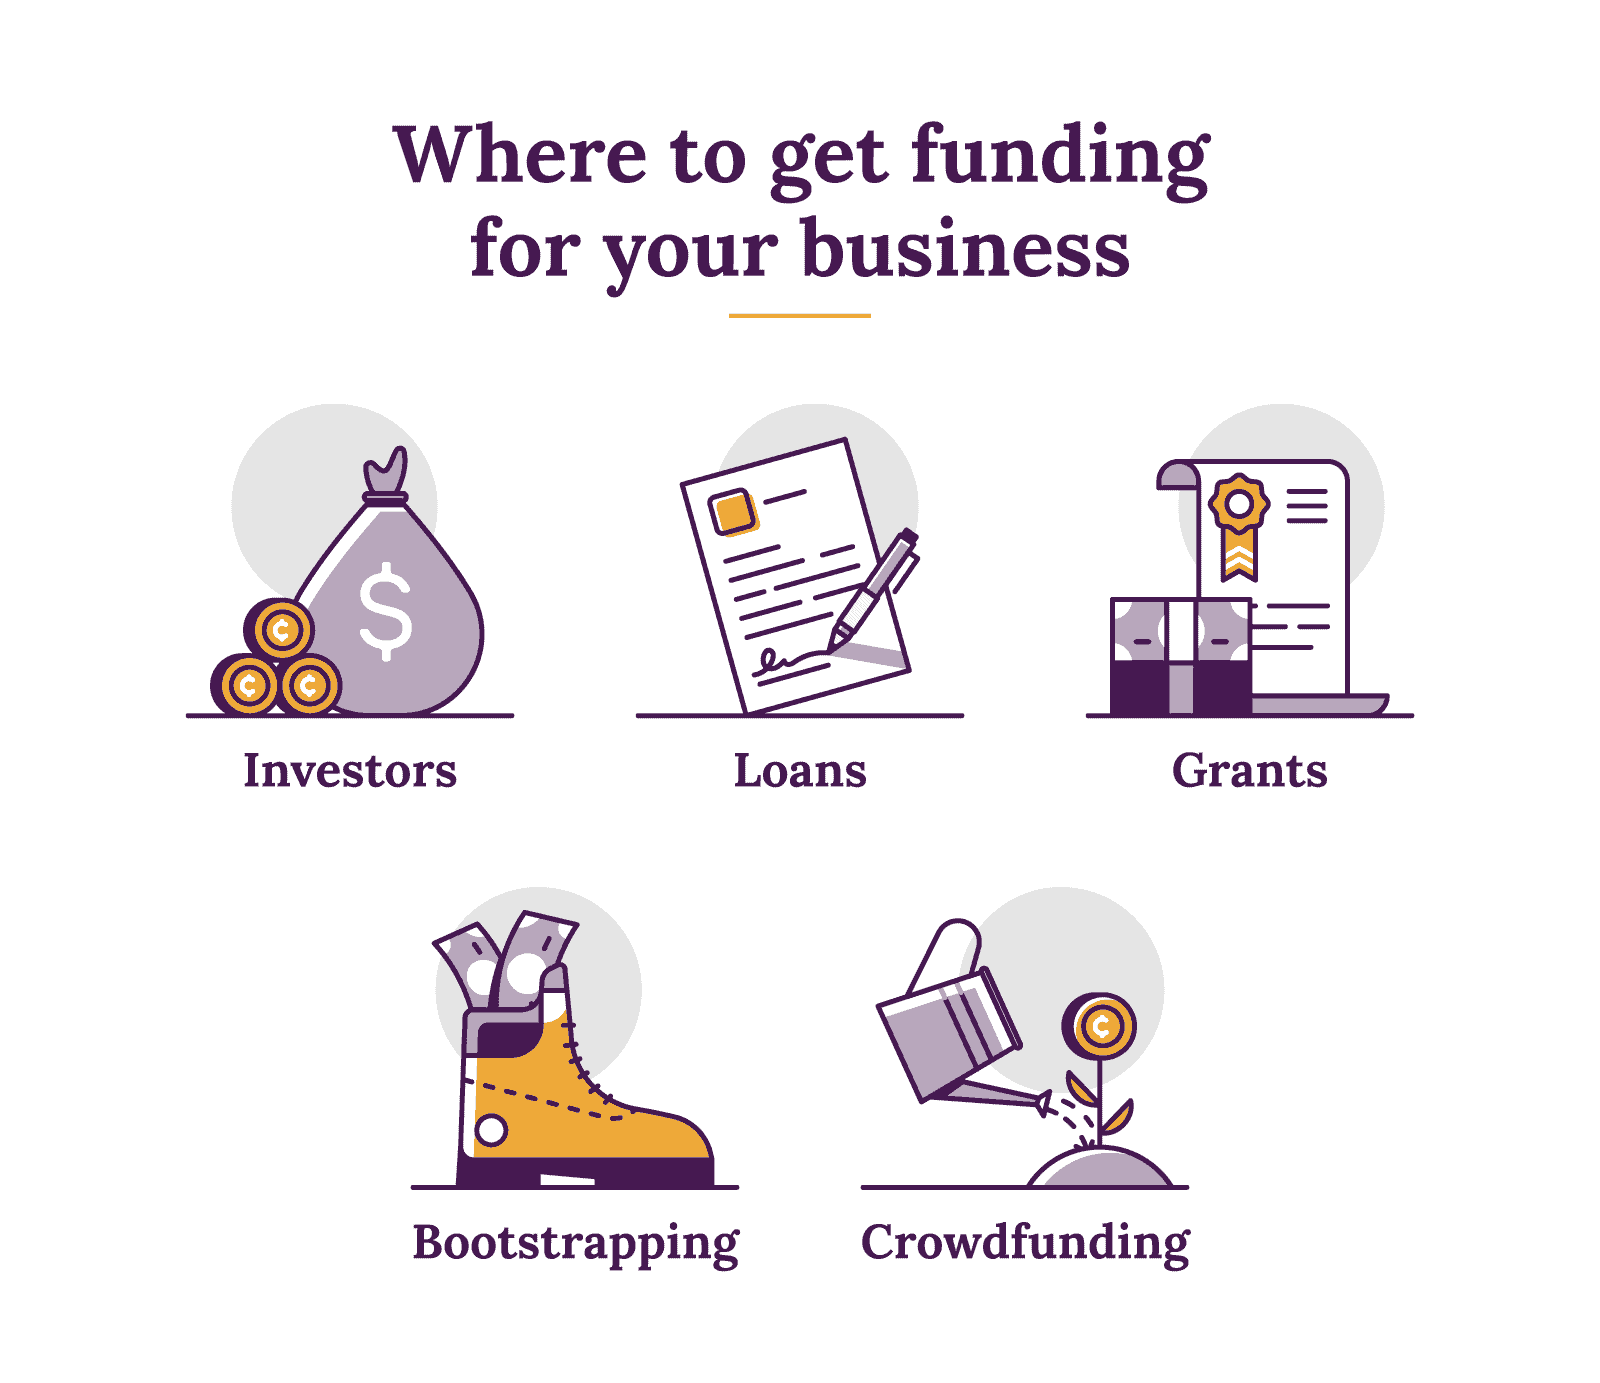 Where to get funding for your business